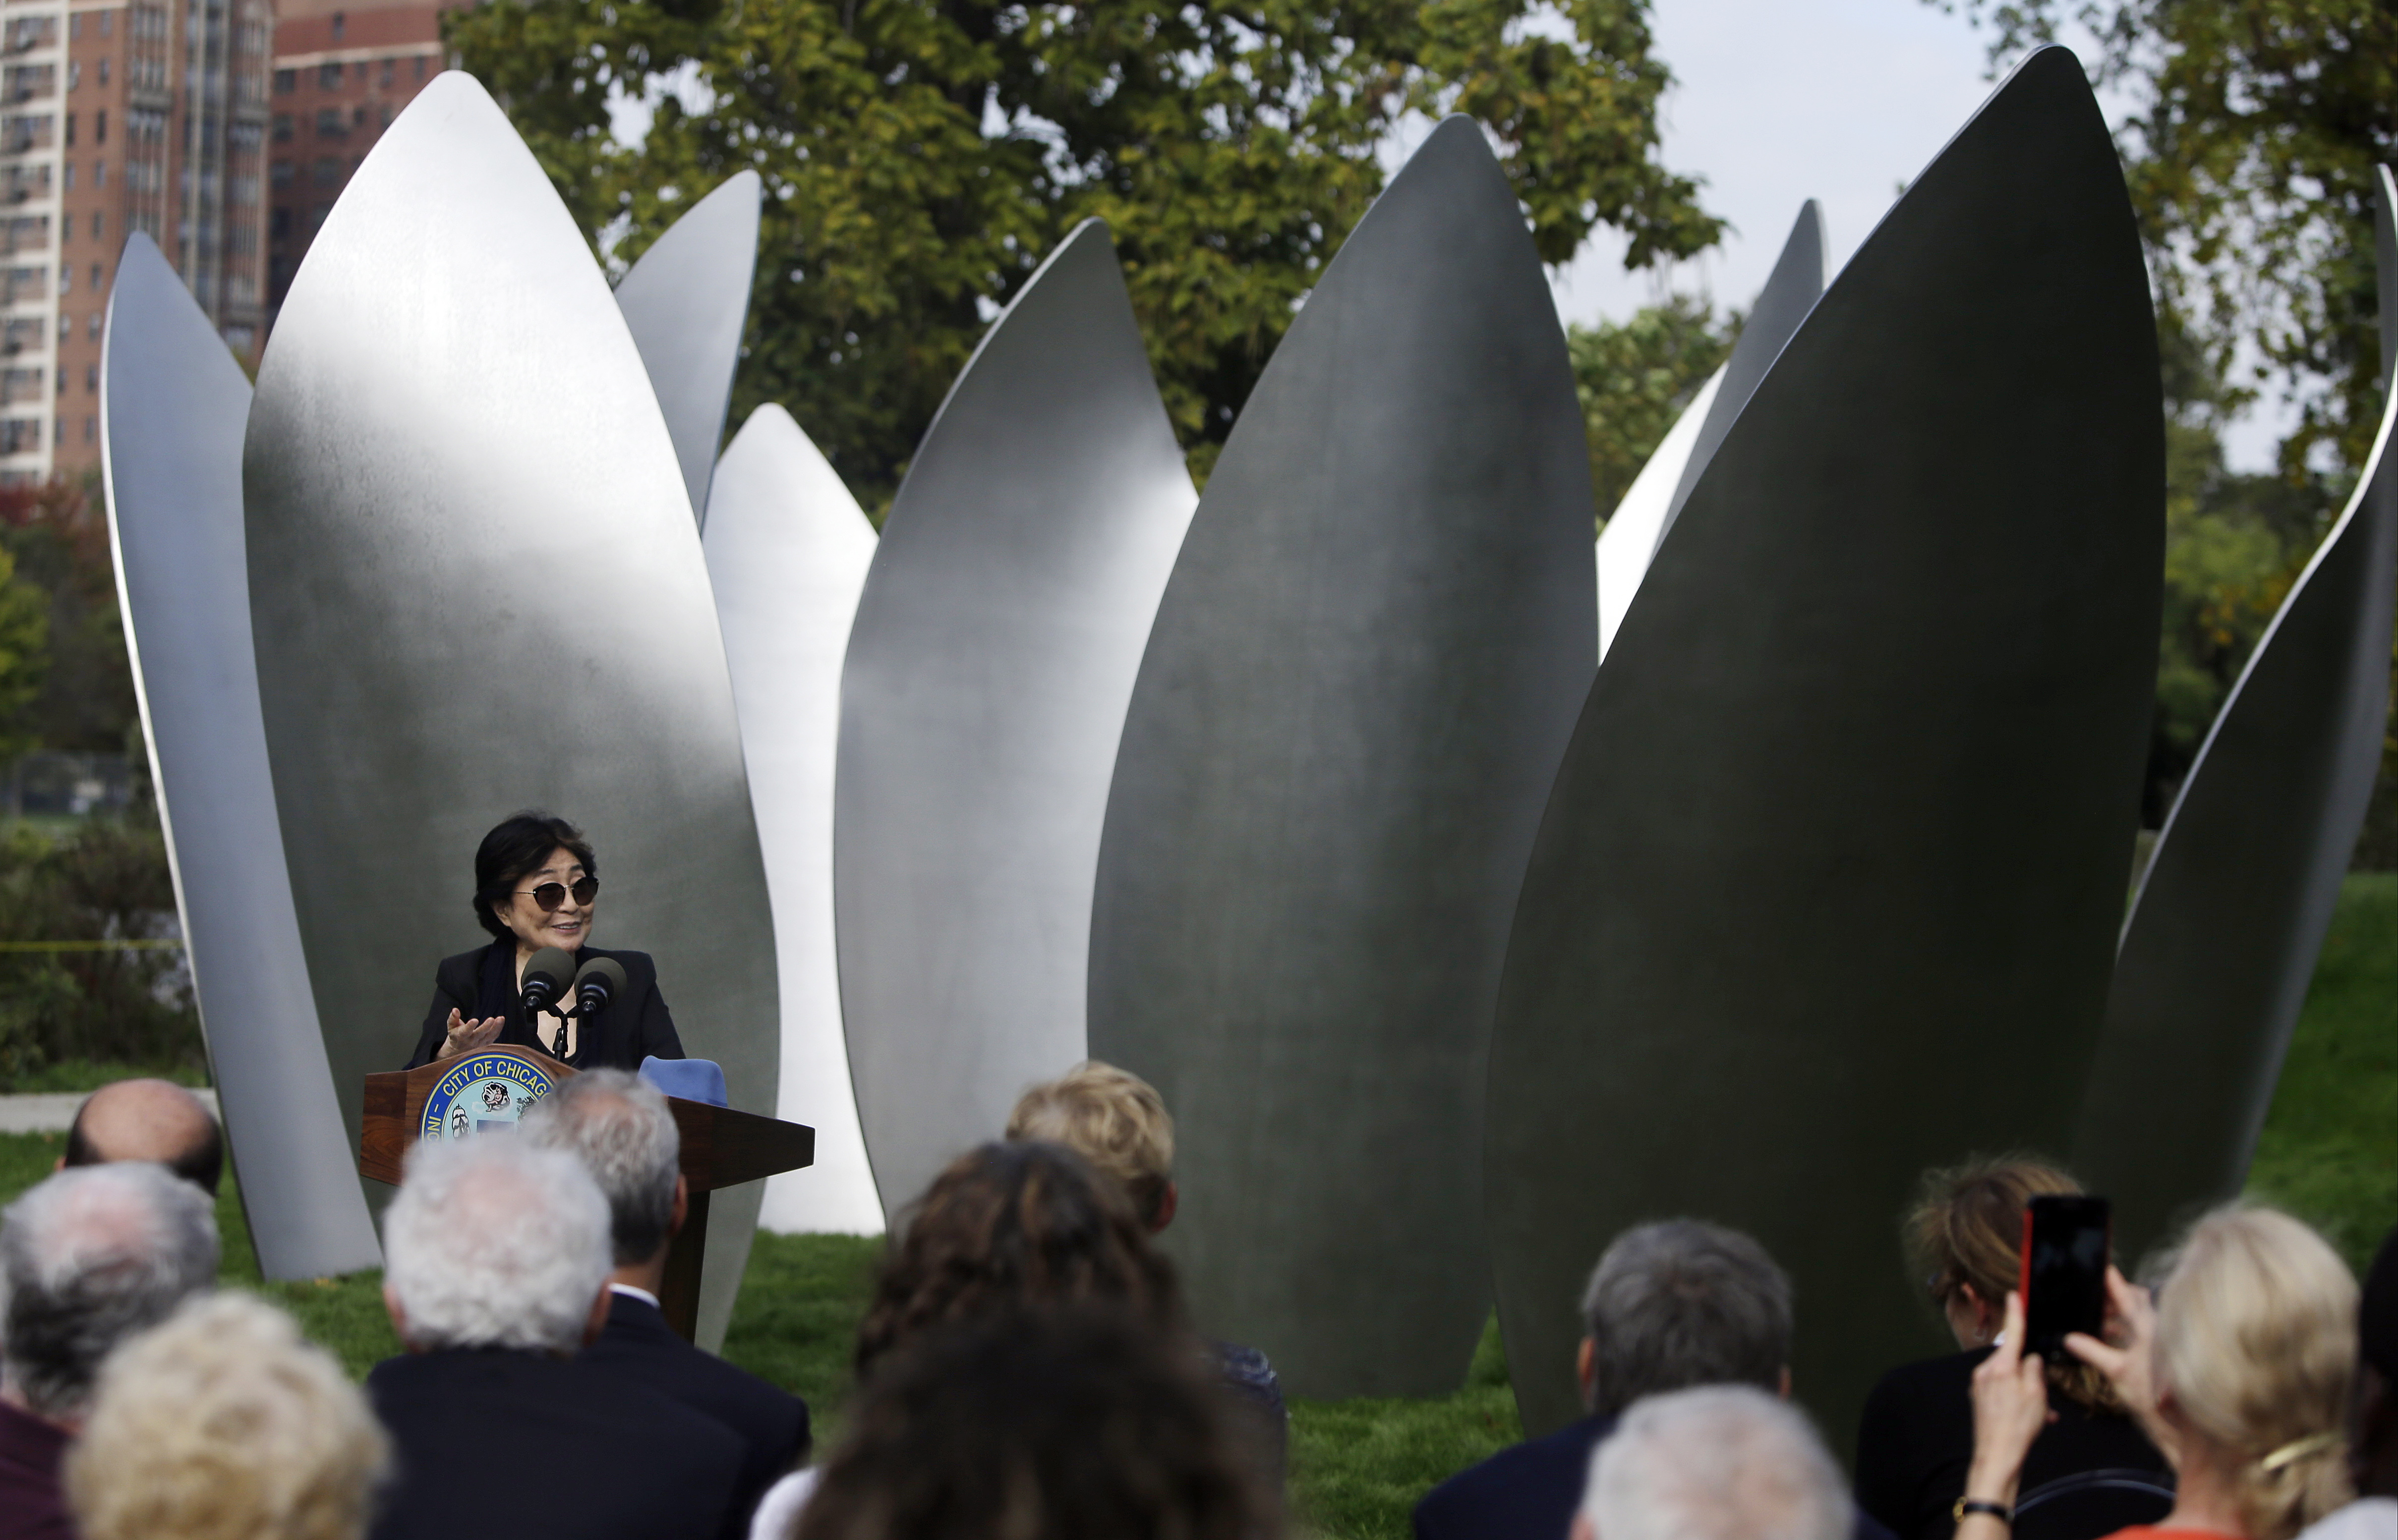 Yoko Ono speaks during the dedication ceremony for her permanent art installation, a sculpture called Sky Landing on Oct. 17, 2016, in Chicago. Sky Landing is Ono's first permanent public art installation in the United States. (AP Photo/Kiichiro Sato).